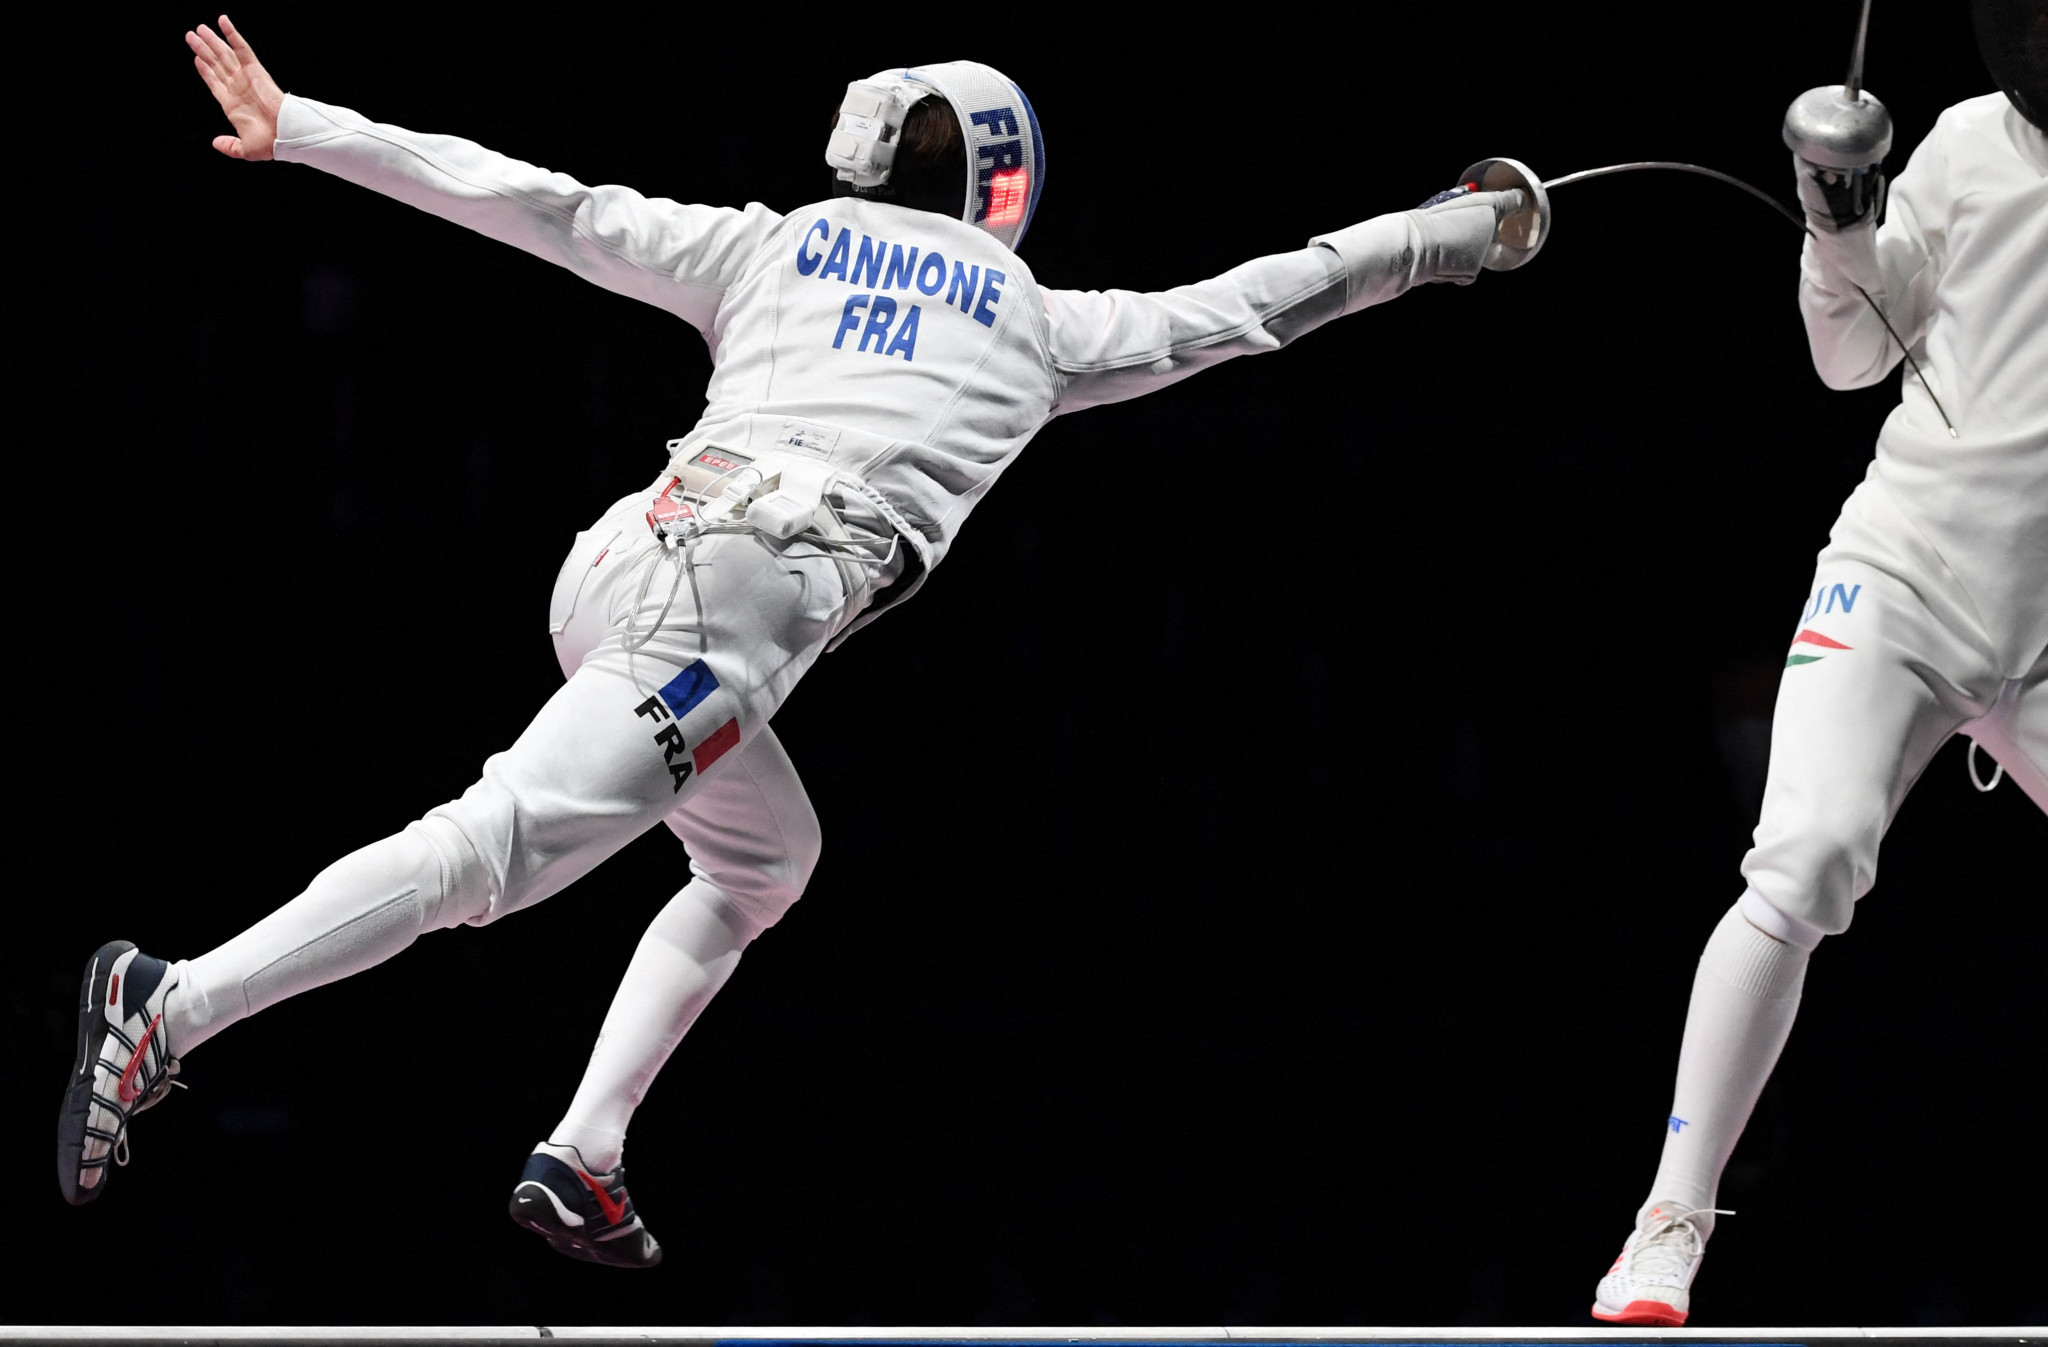 France's Romain Cannone was a surprise winner of the men's individual epee event ©Getty Images